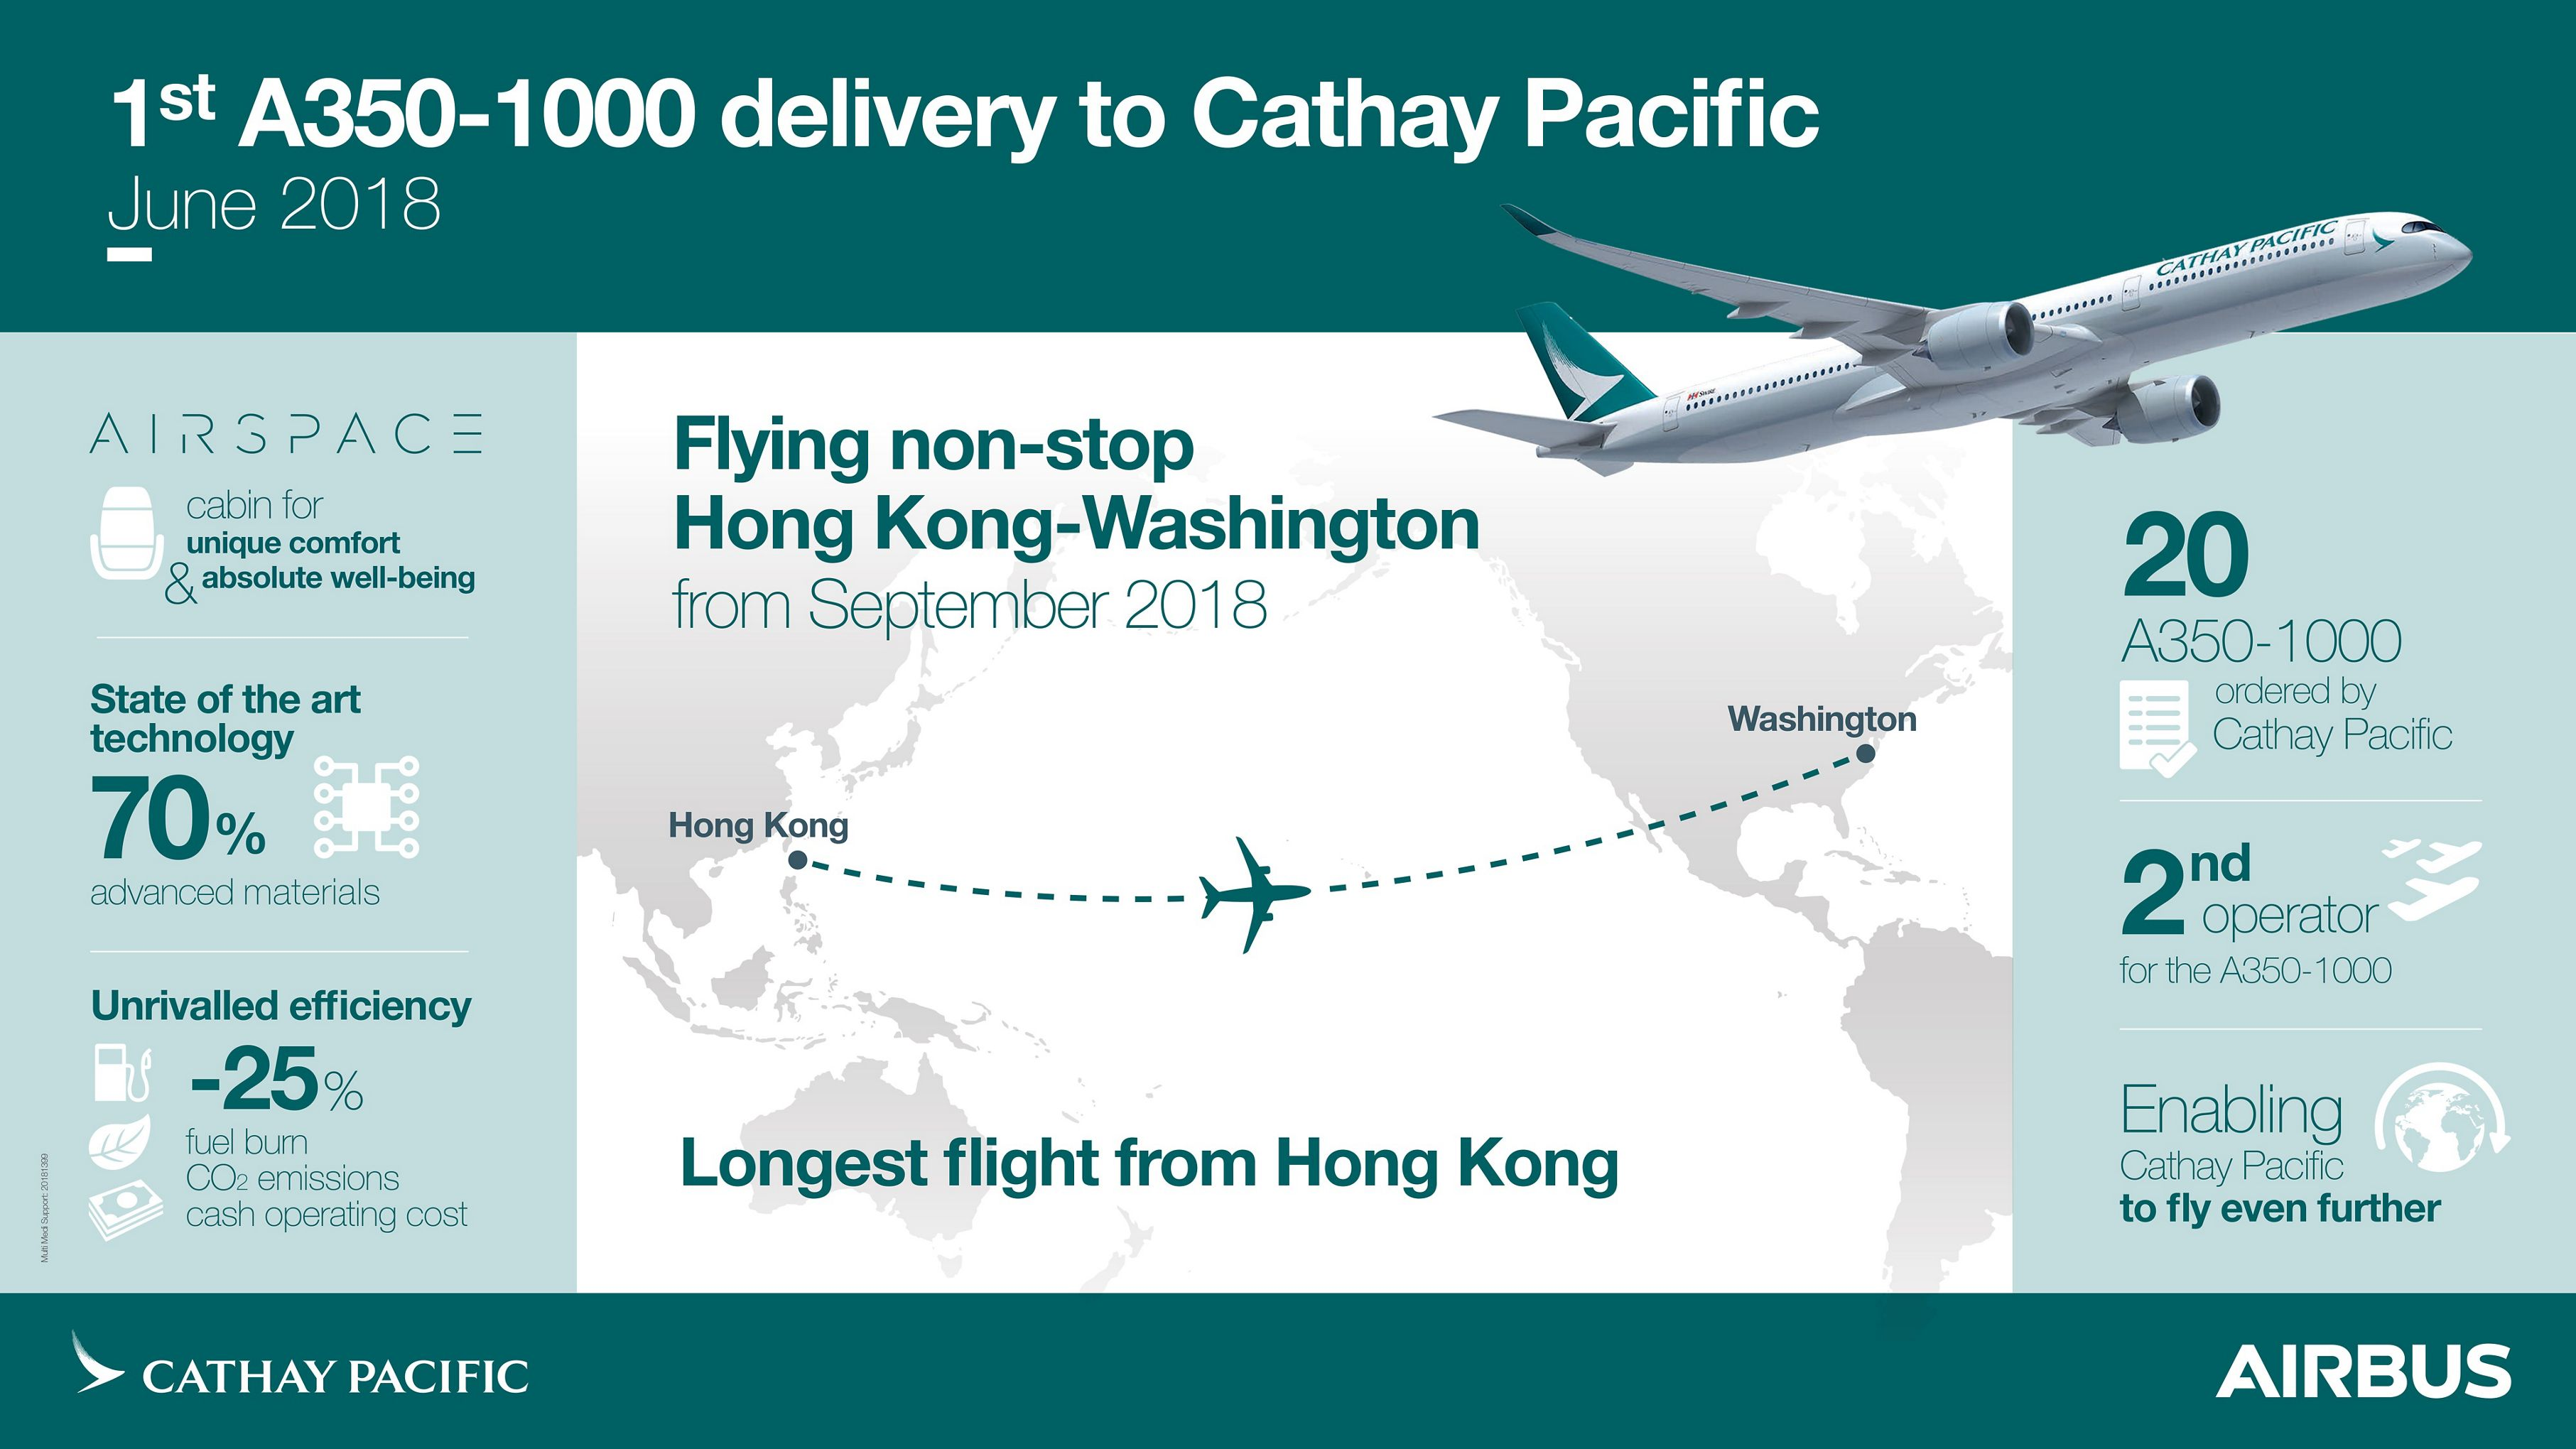 Cathay Pacific becomes the second operator of the Airbus A350-1000